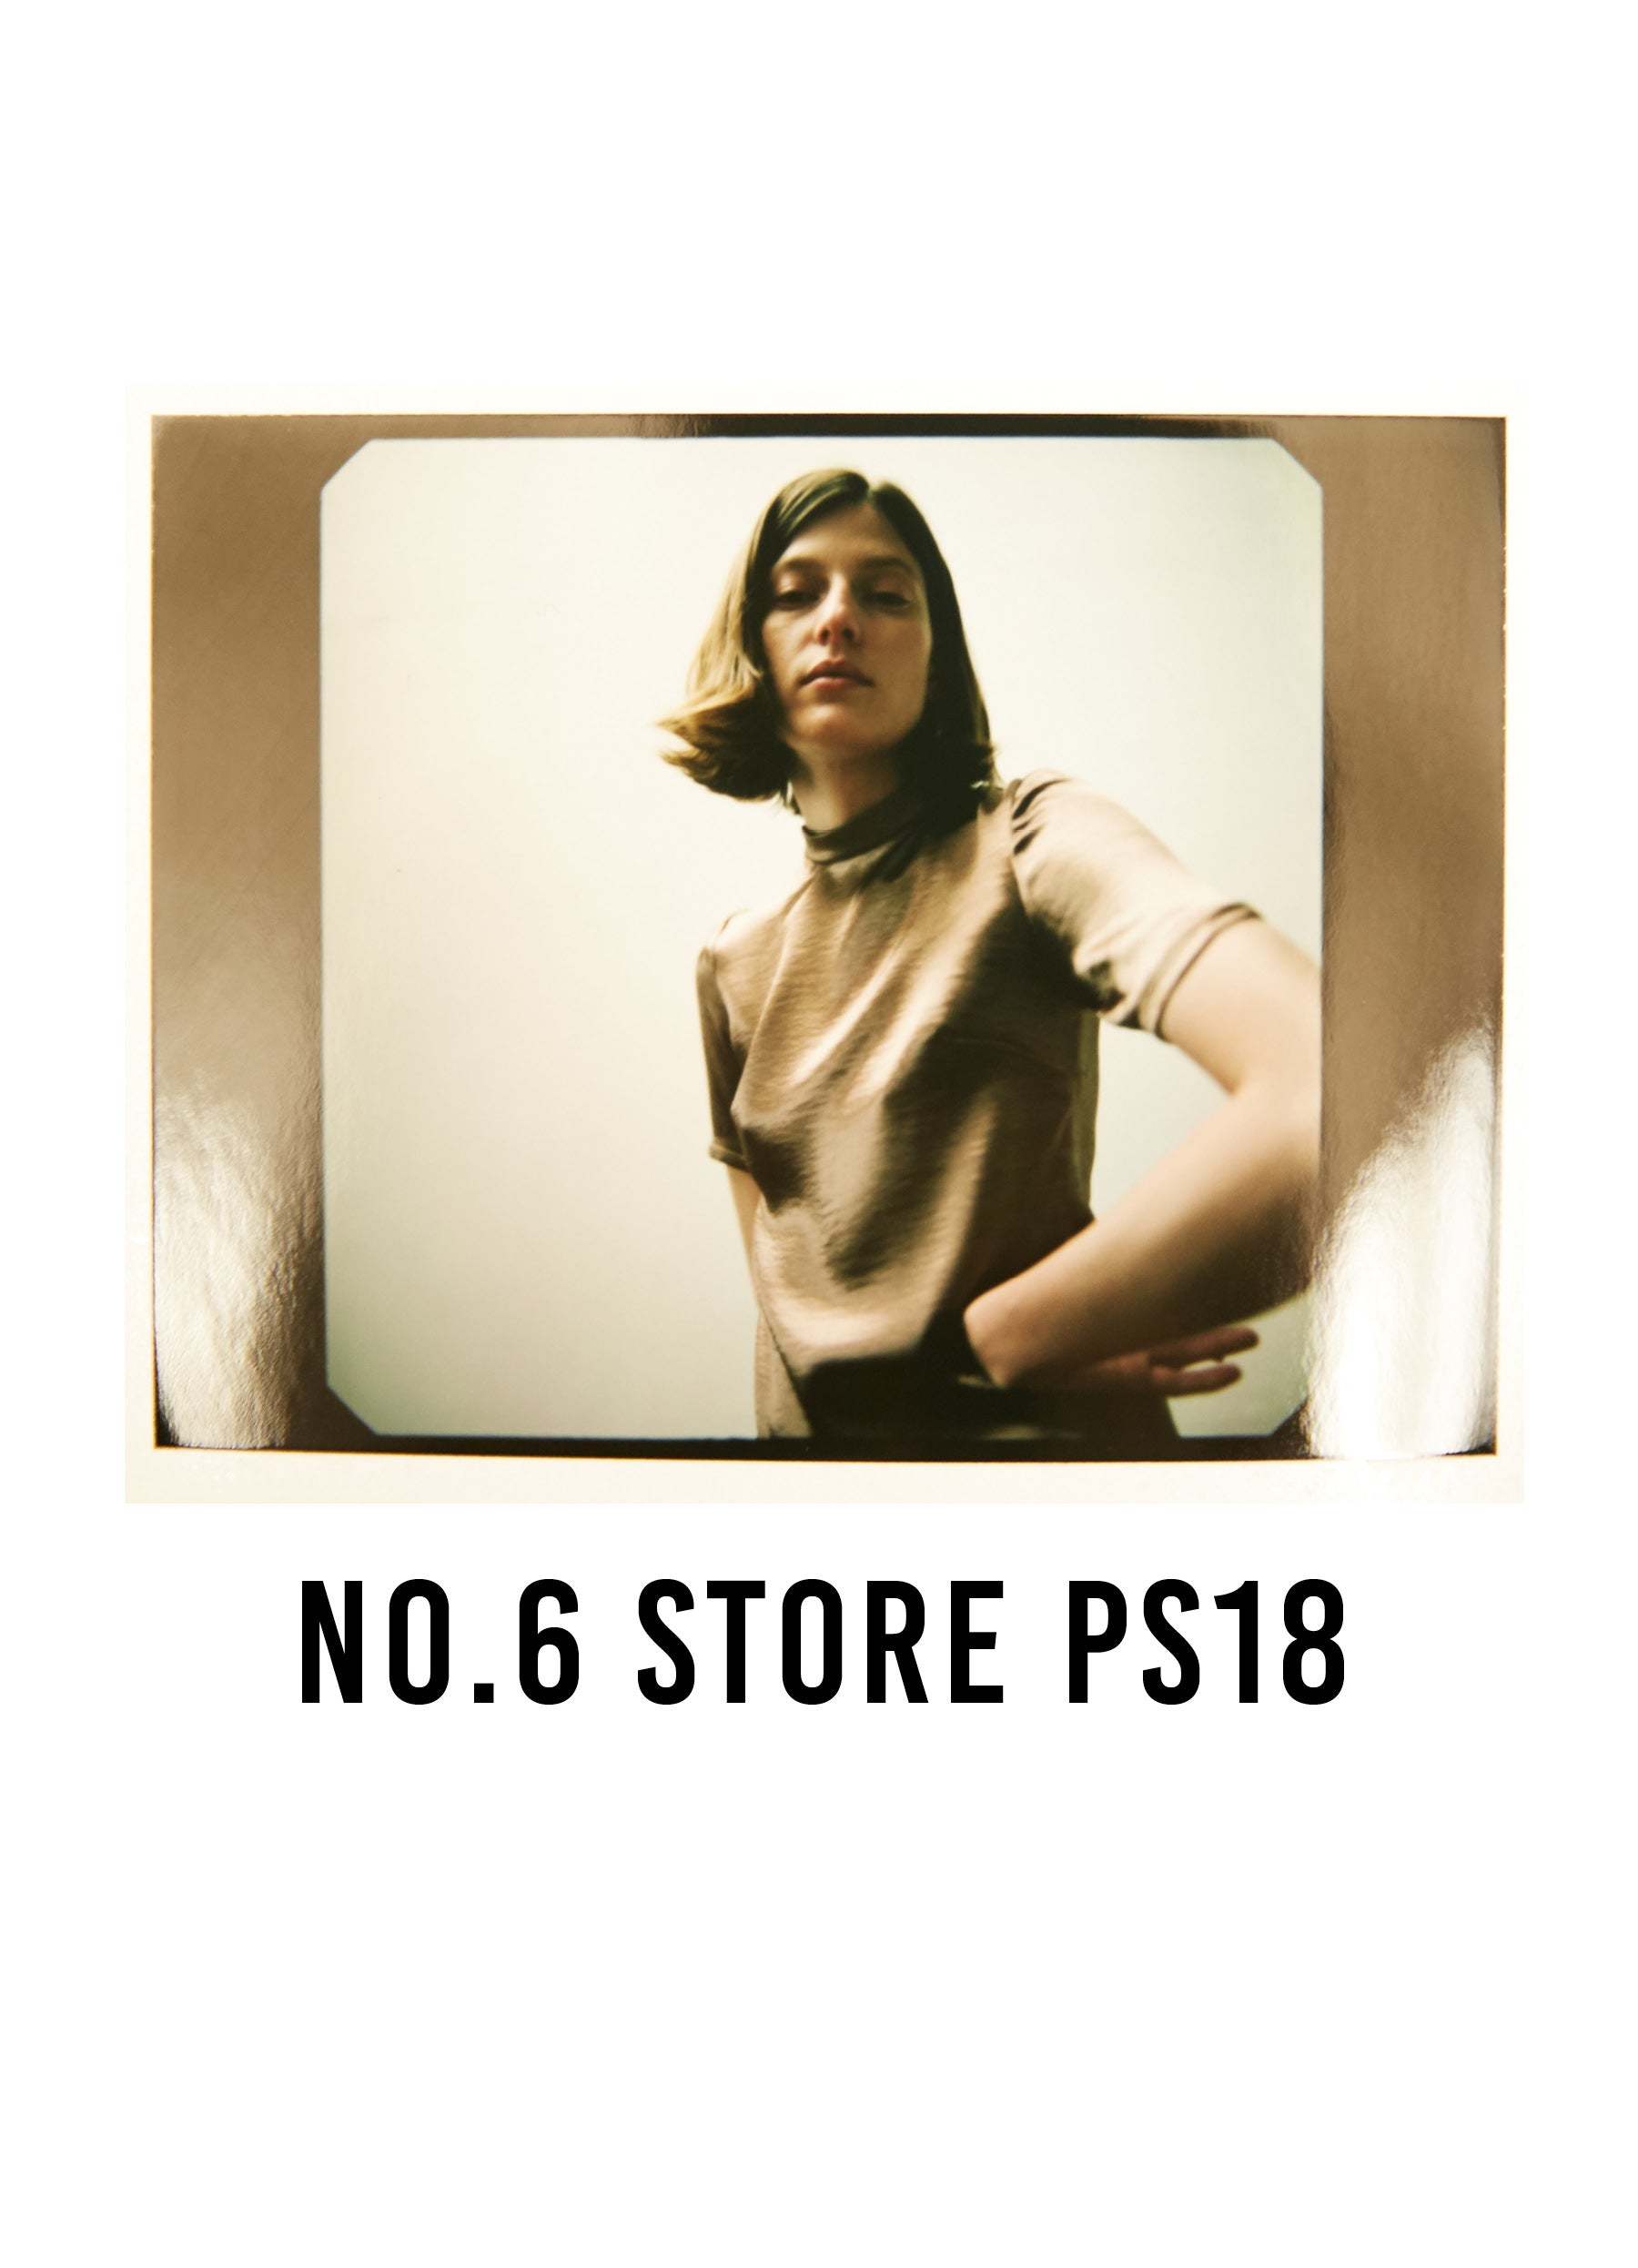 PS18 Clothing